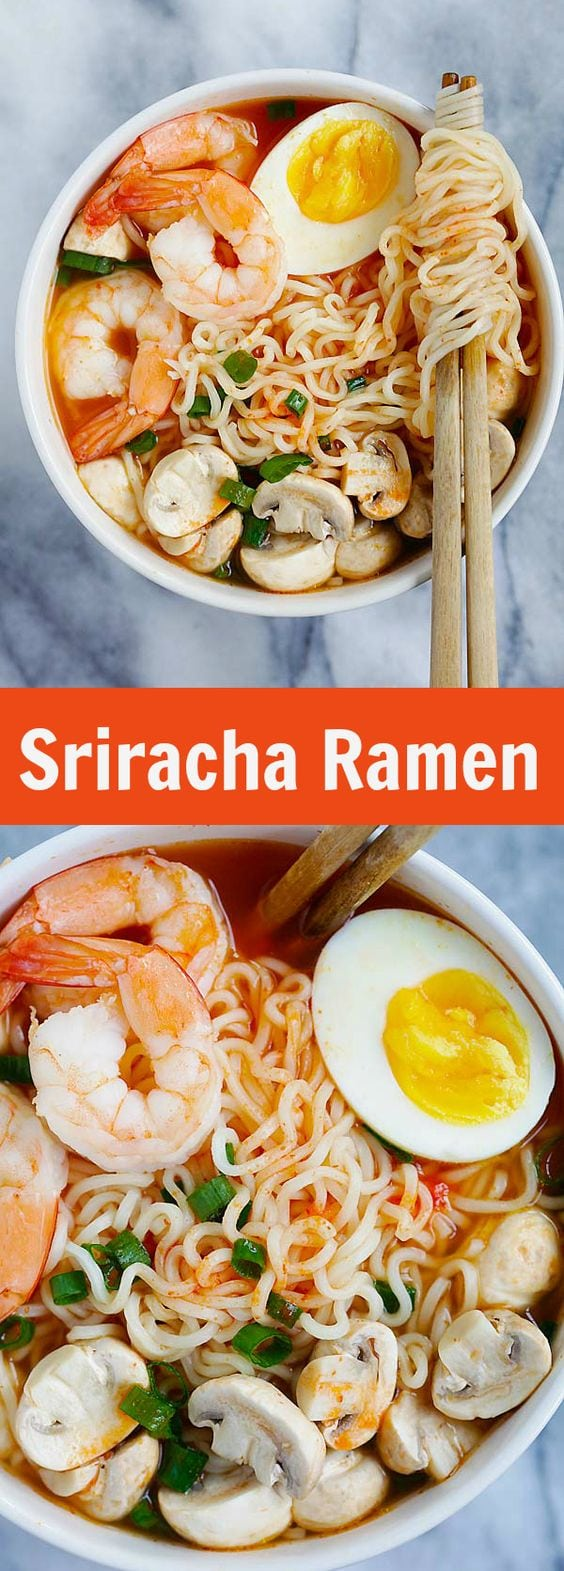 Sriracha Ramen - the best homemade ramen ever with spicy Sriracha broth and yummy toppings. So easy and takes only 15 minutes | rasamalaysia.com